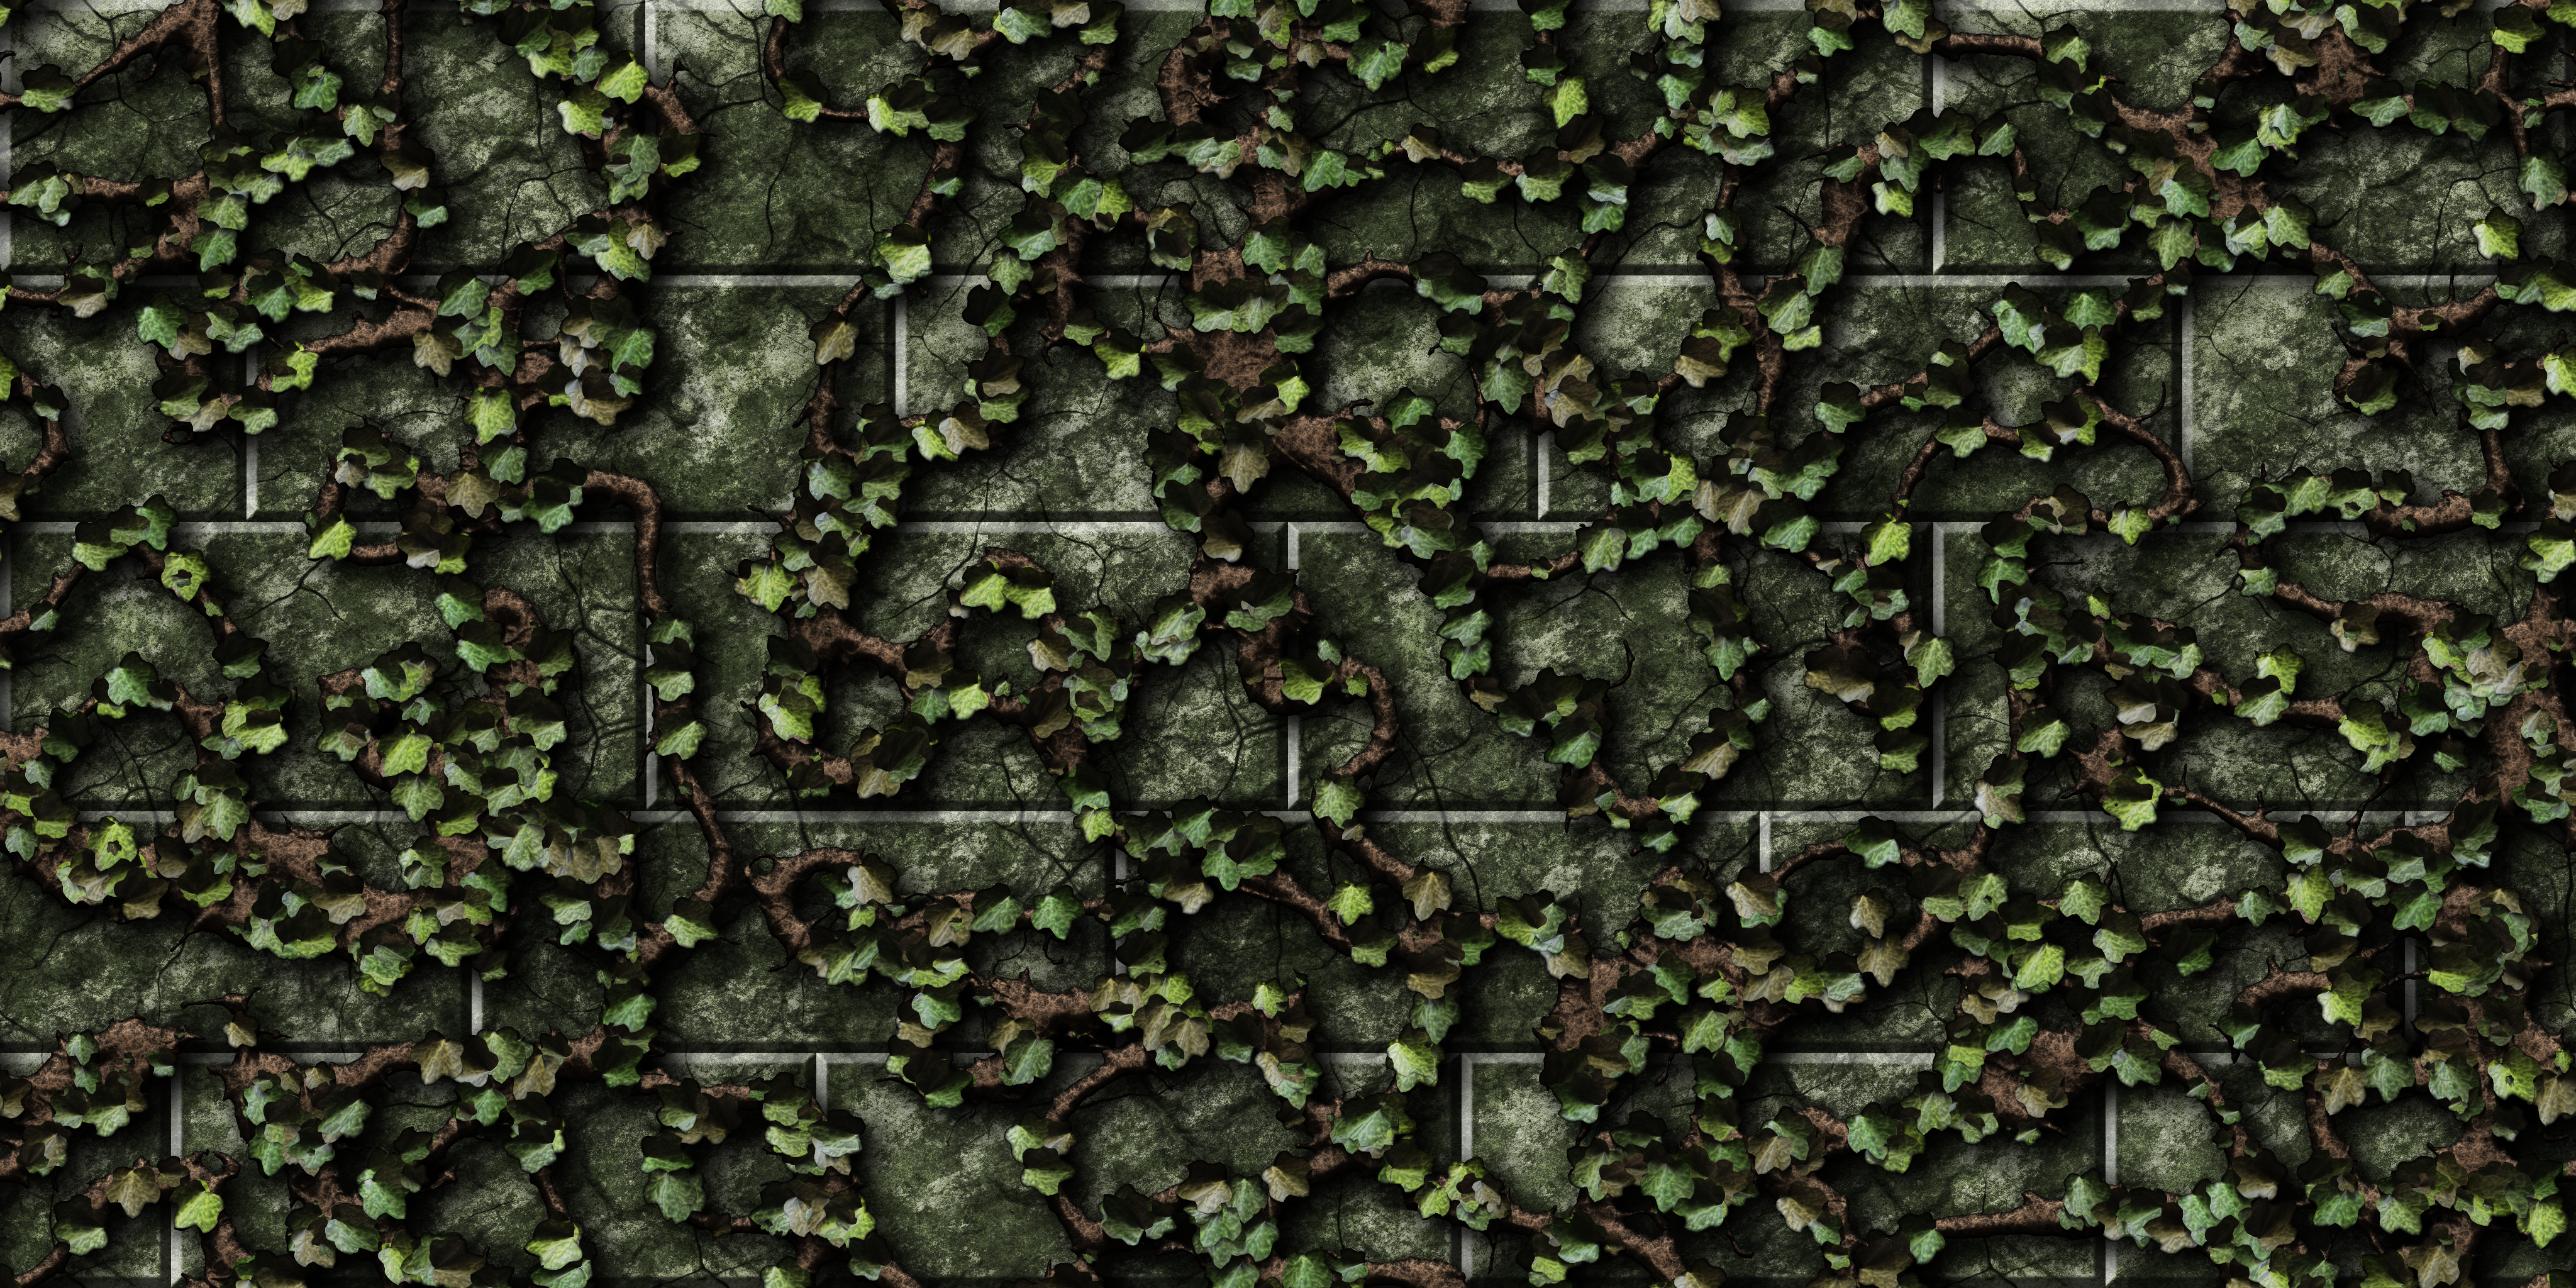 Green Bricks with Vines 01 by Hoover1979